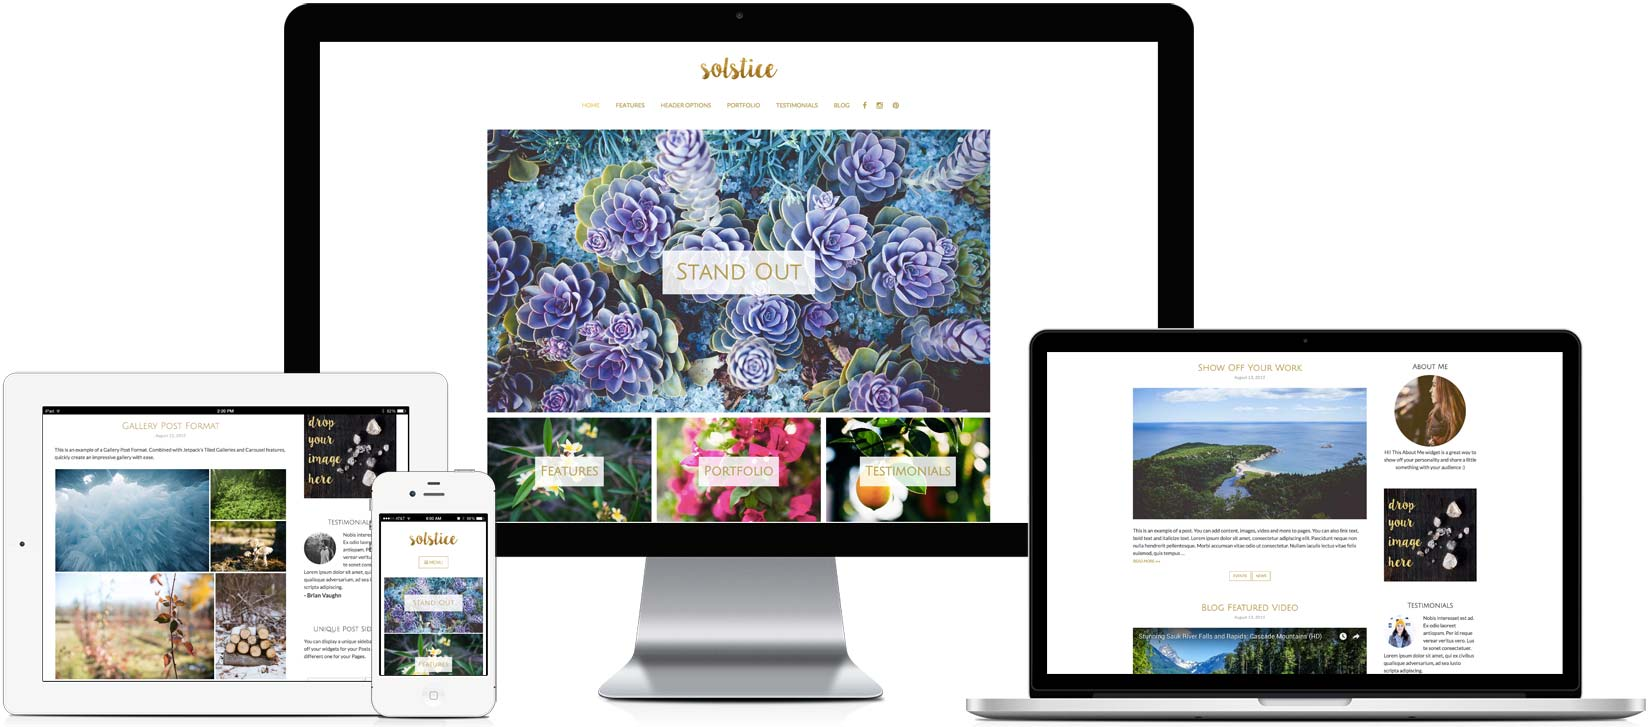 Solstice - Responsive WordPress Theme